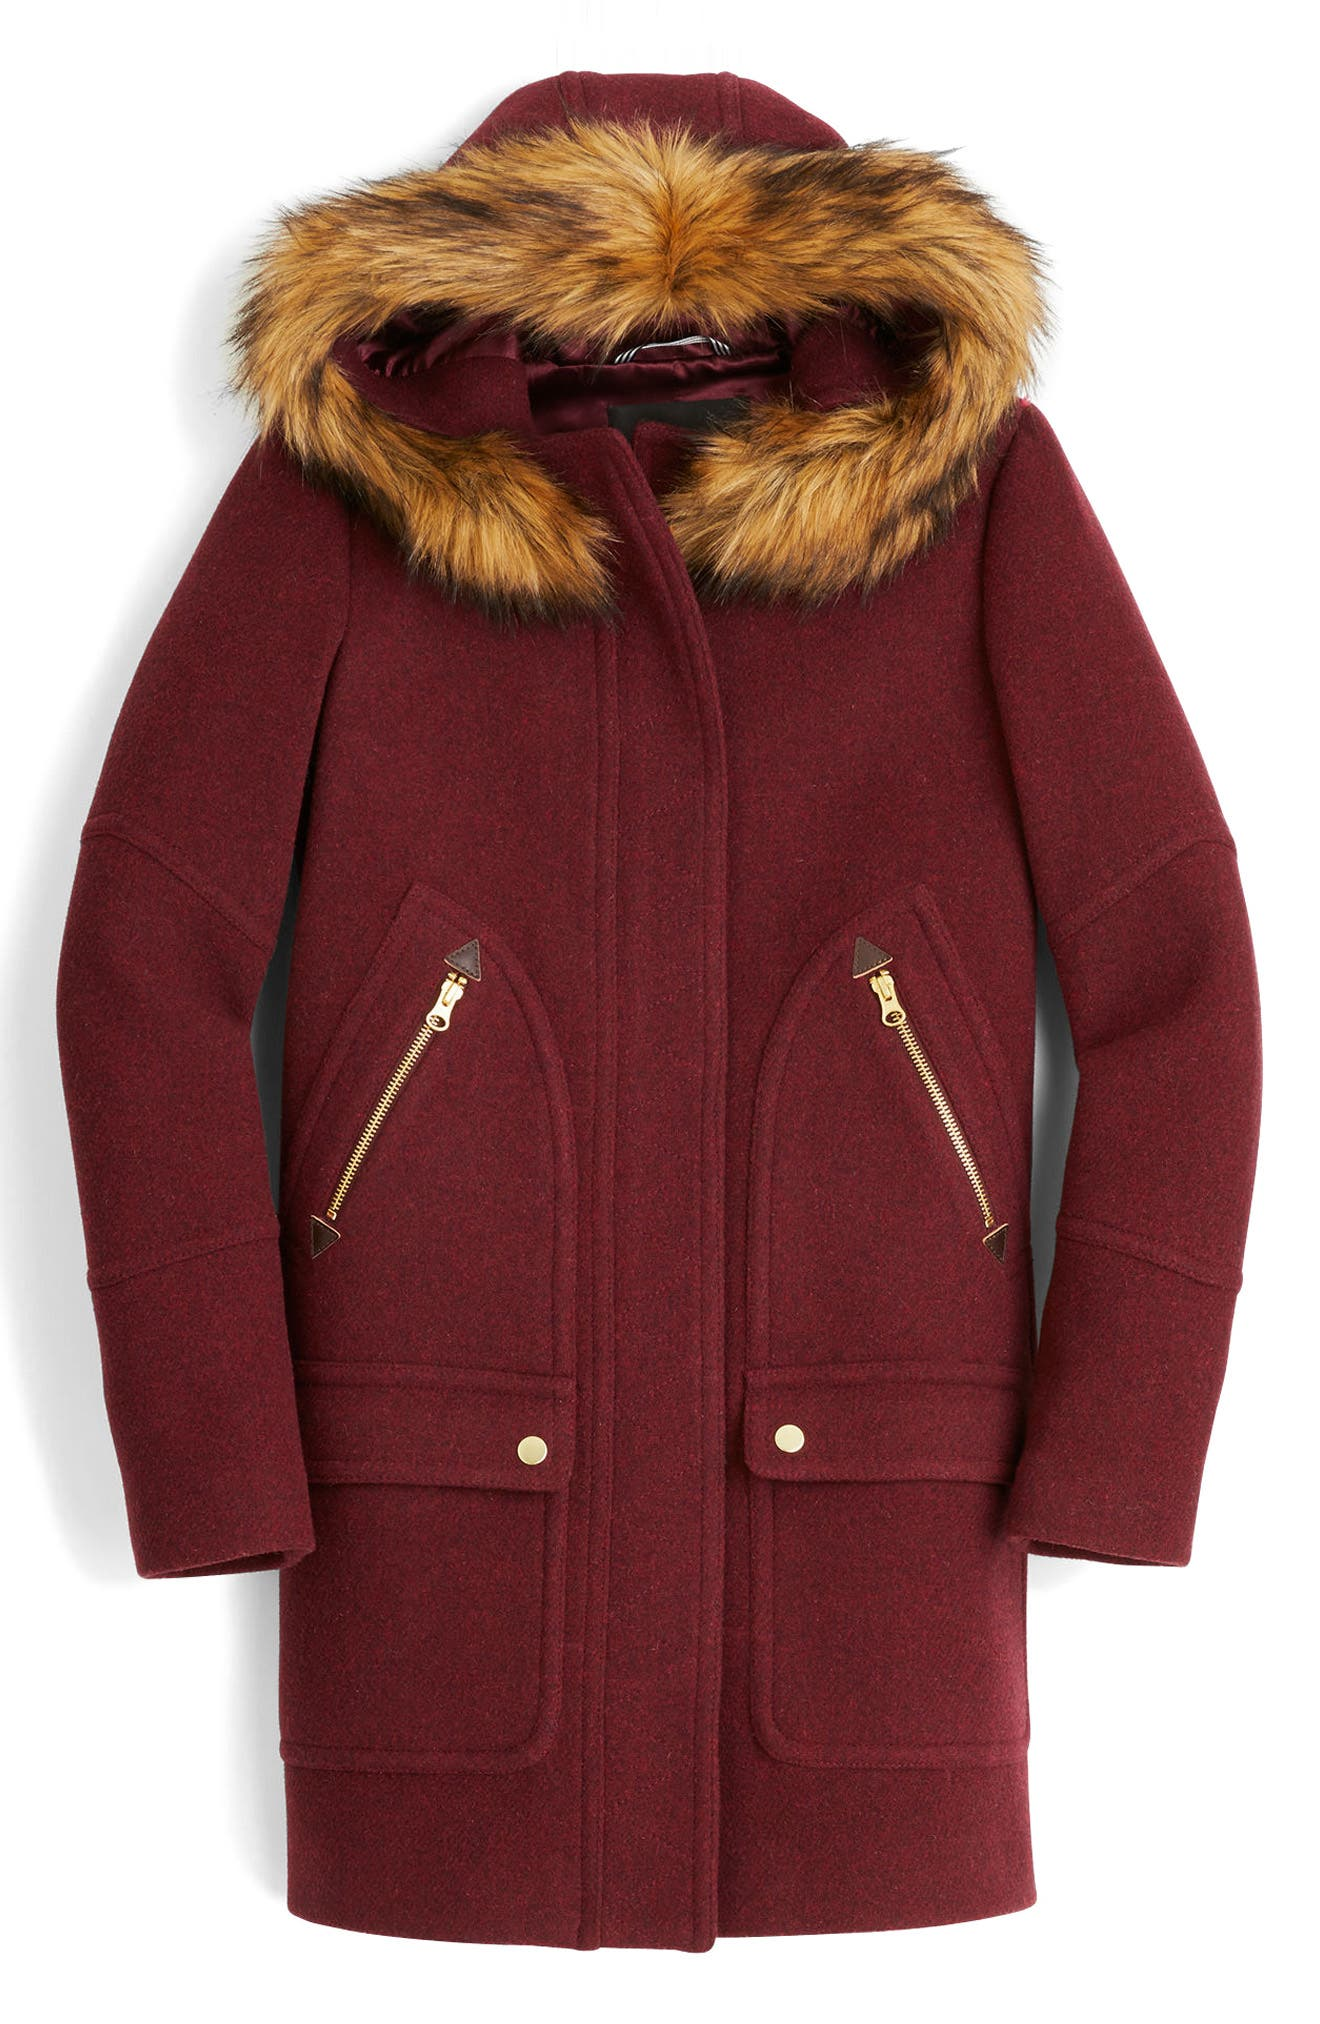 Chateau Stadium Cloth Parka with Faux Fur Trim,                             Main thumbnail 1, color,                             Heather Fire Red